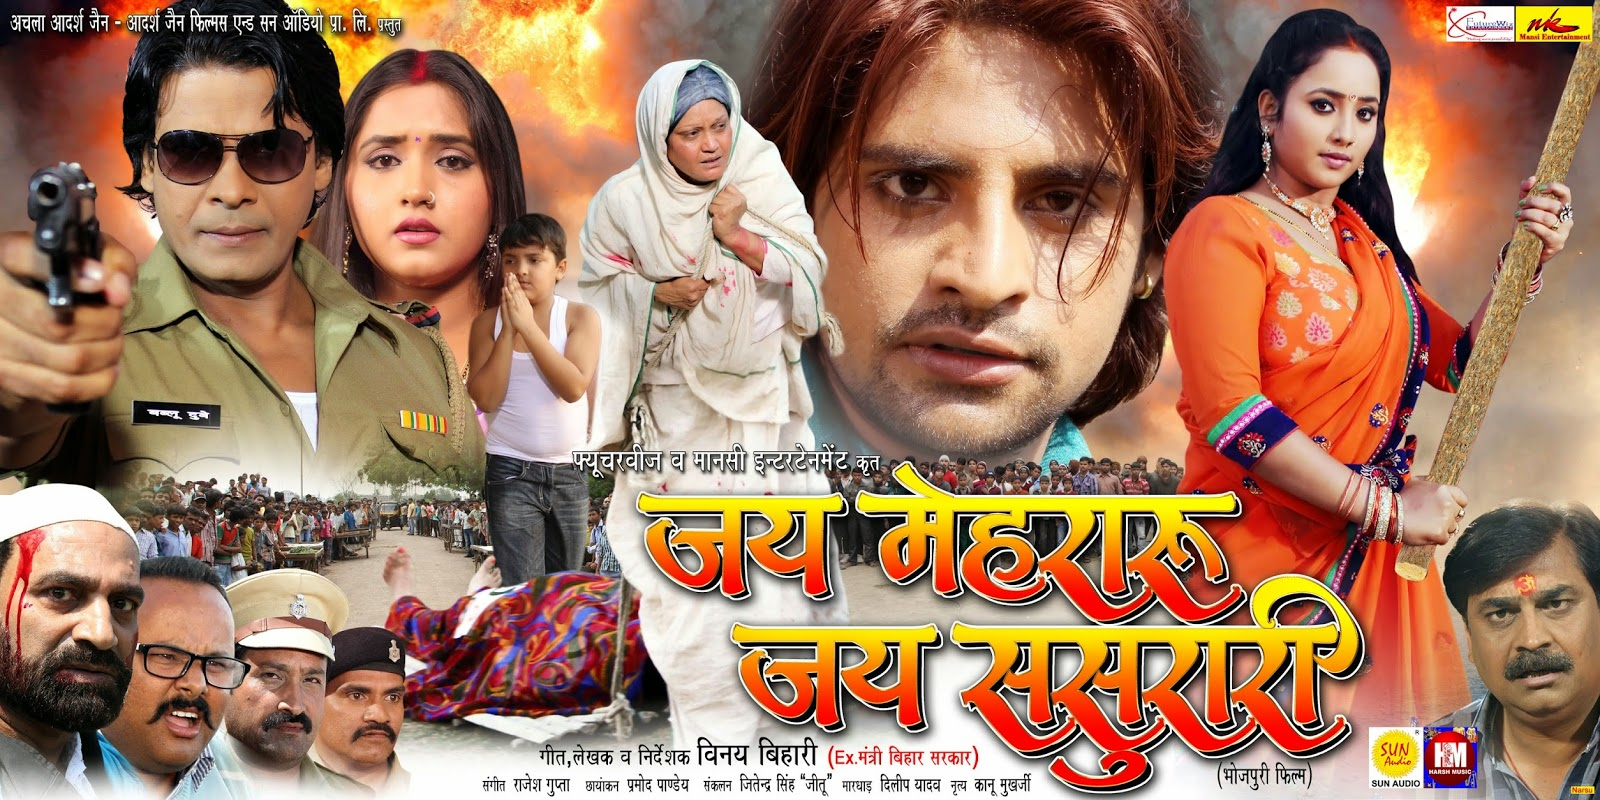 Jai Mehraru Jai Sasurari (2015) Bhojpuri Movie Trailer